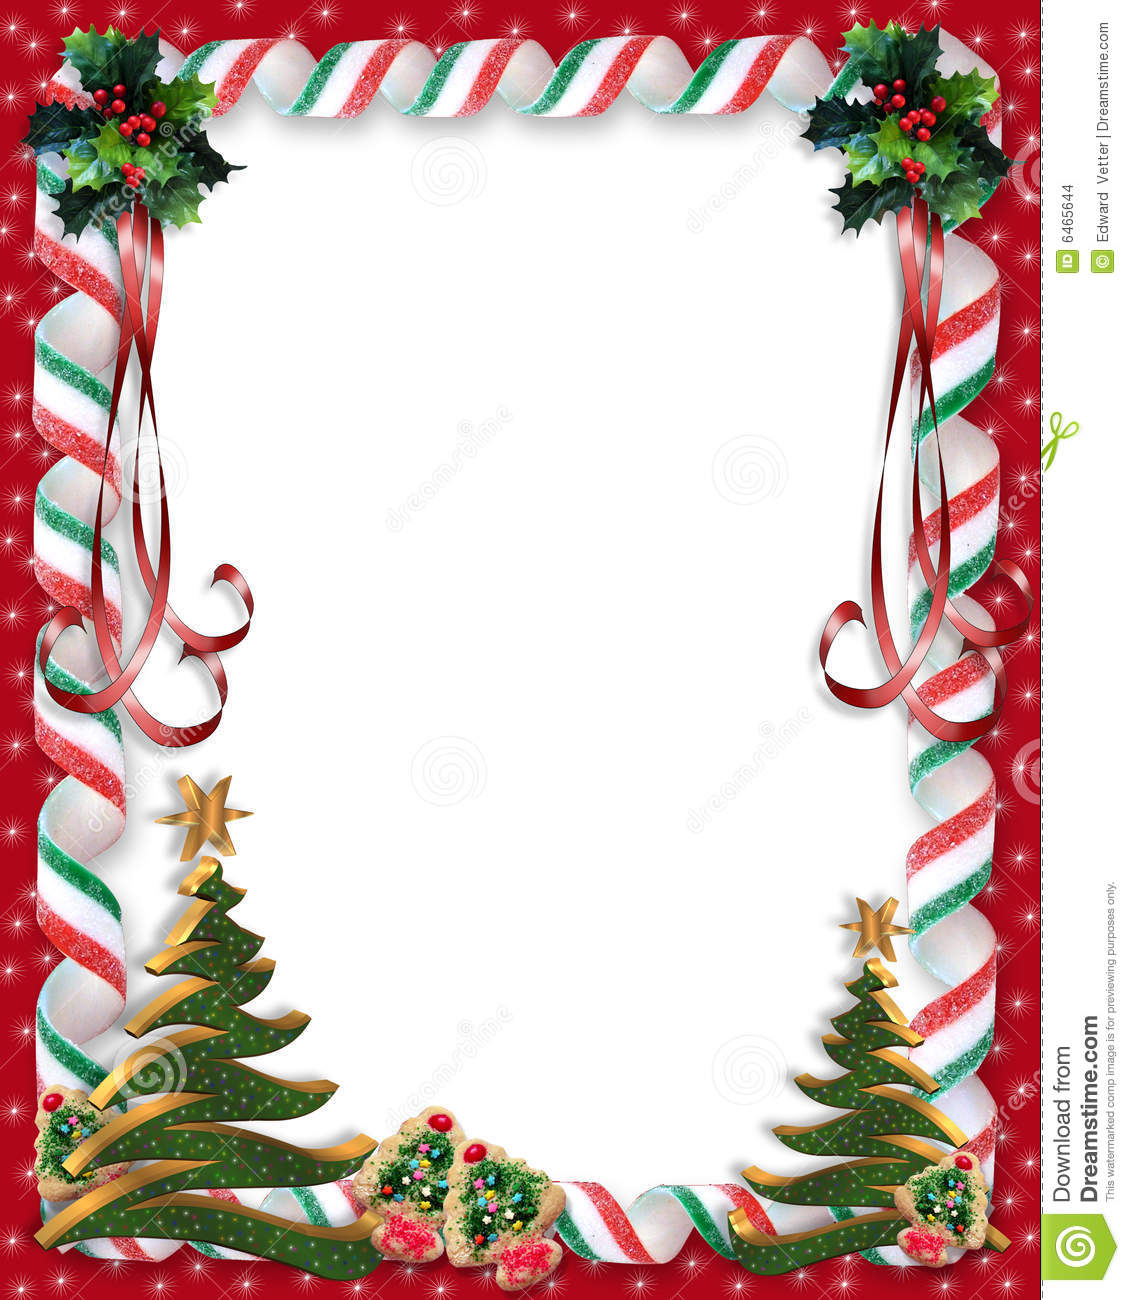 Image and Illustration composition for Christmas holiday background ...